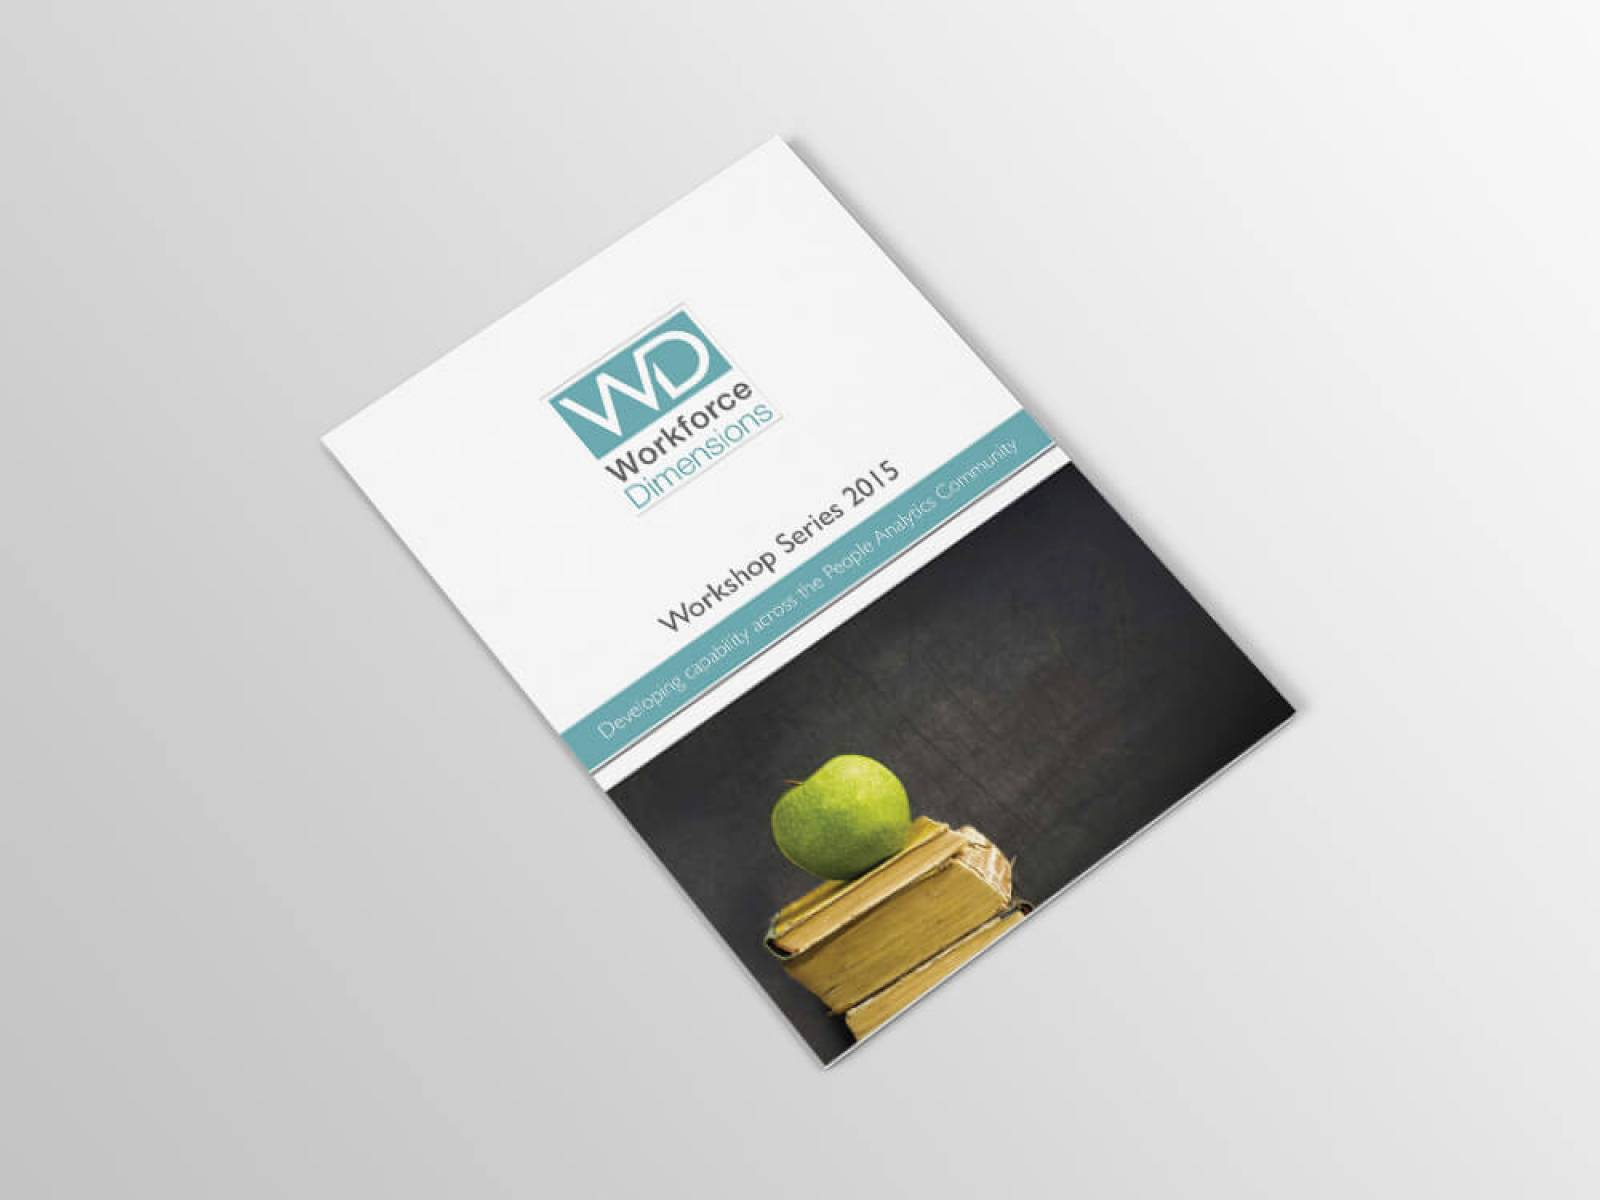 Workforce-dimensions-flyer-1-design-agency-graphic-design-canterbury.jpg